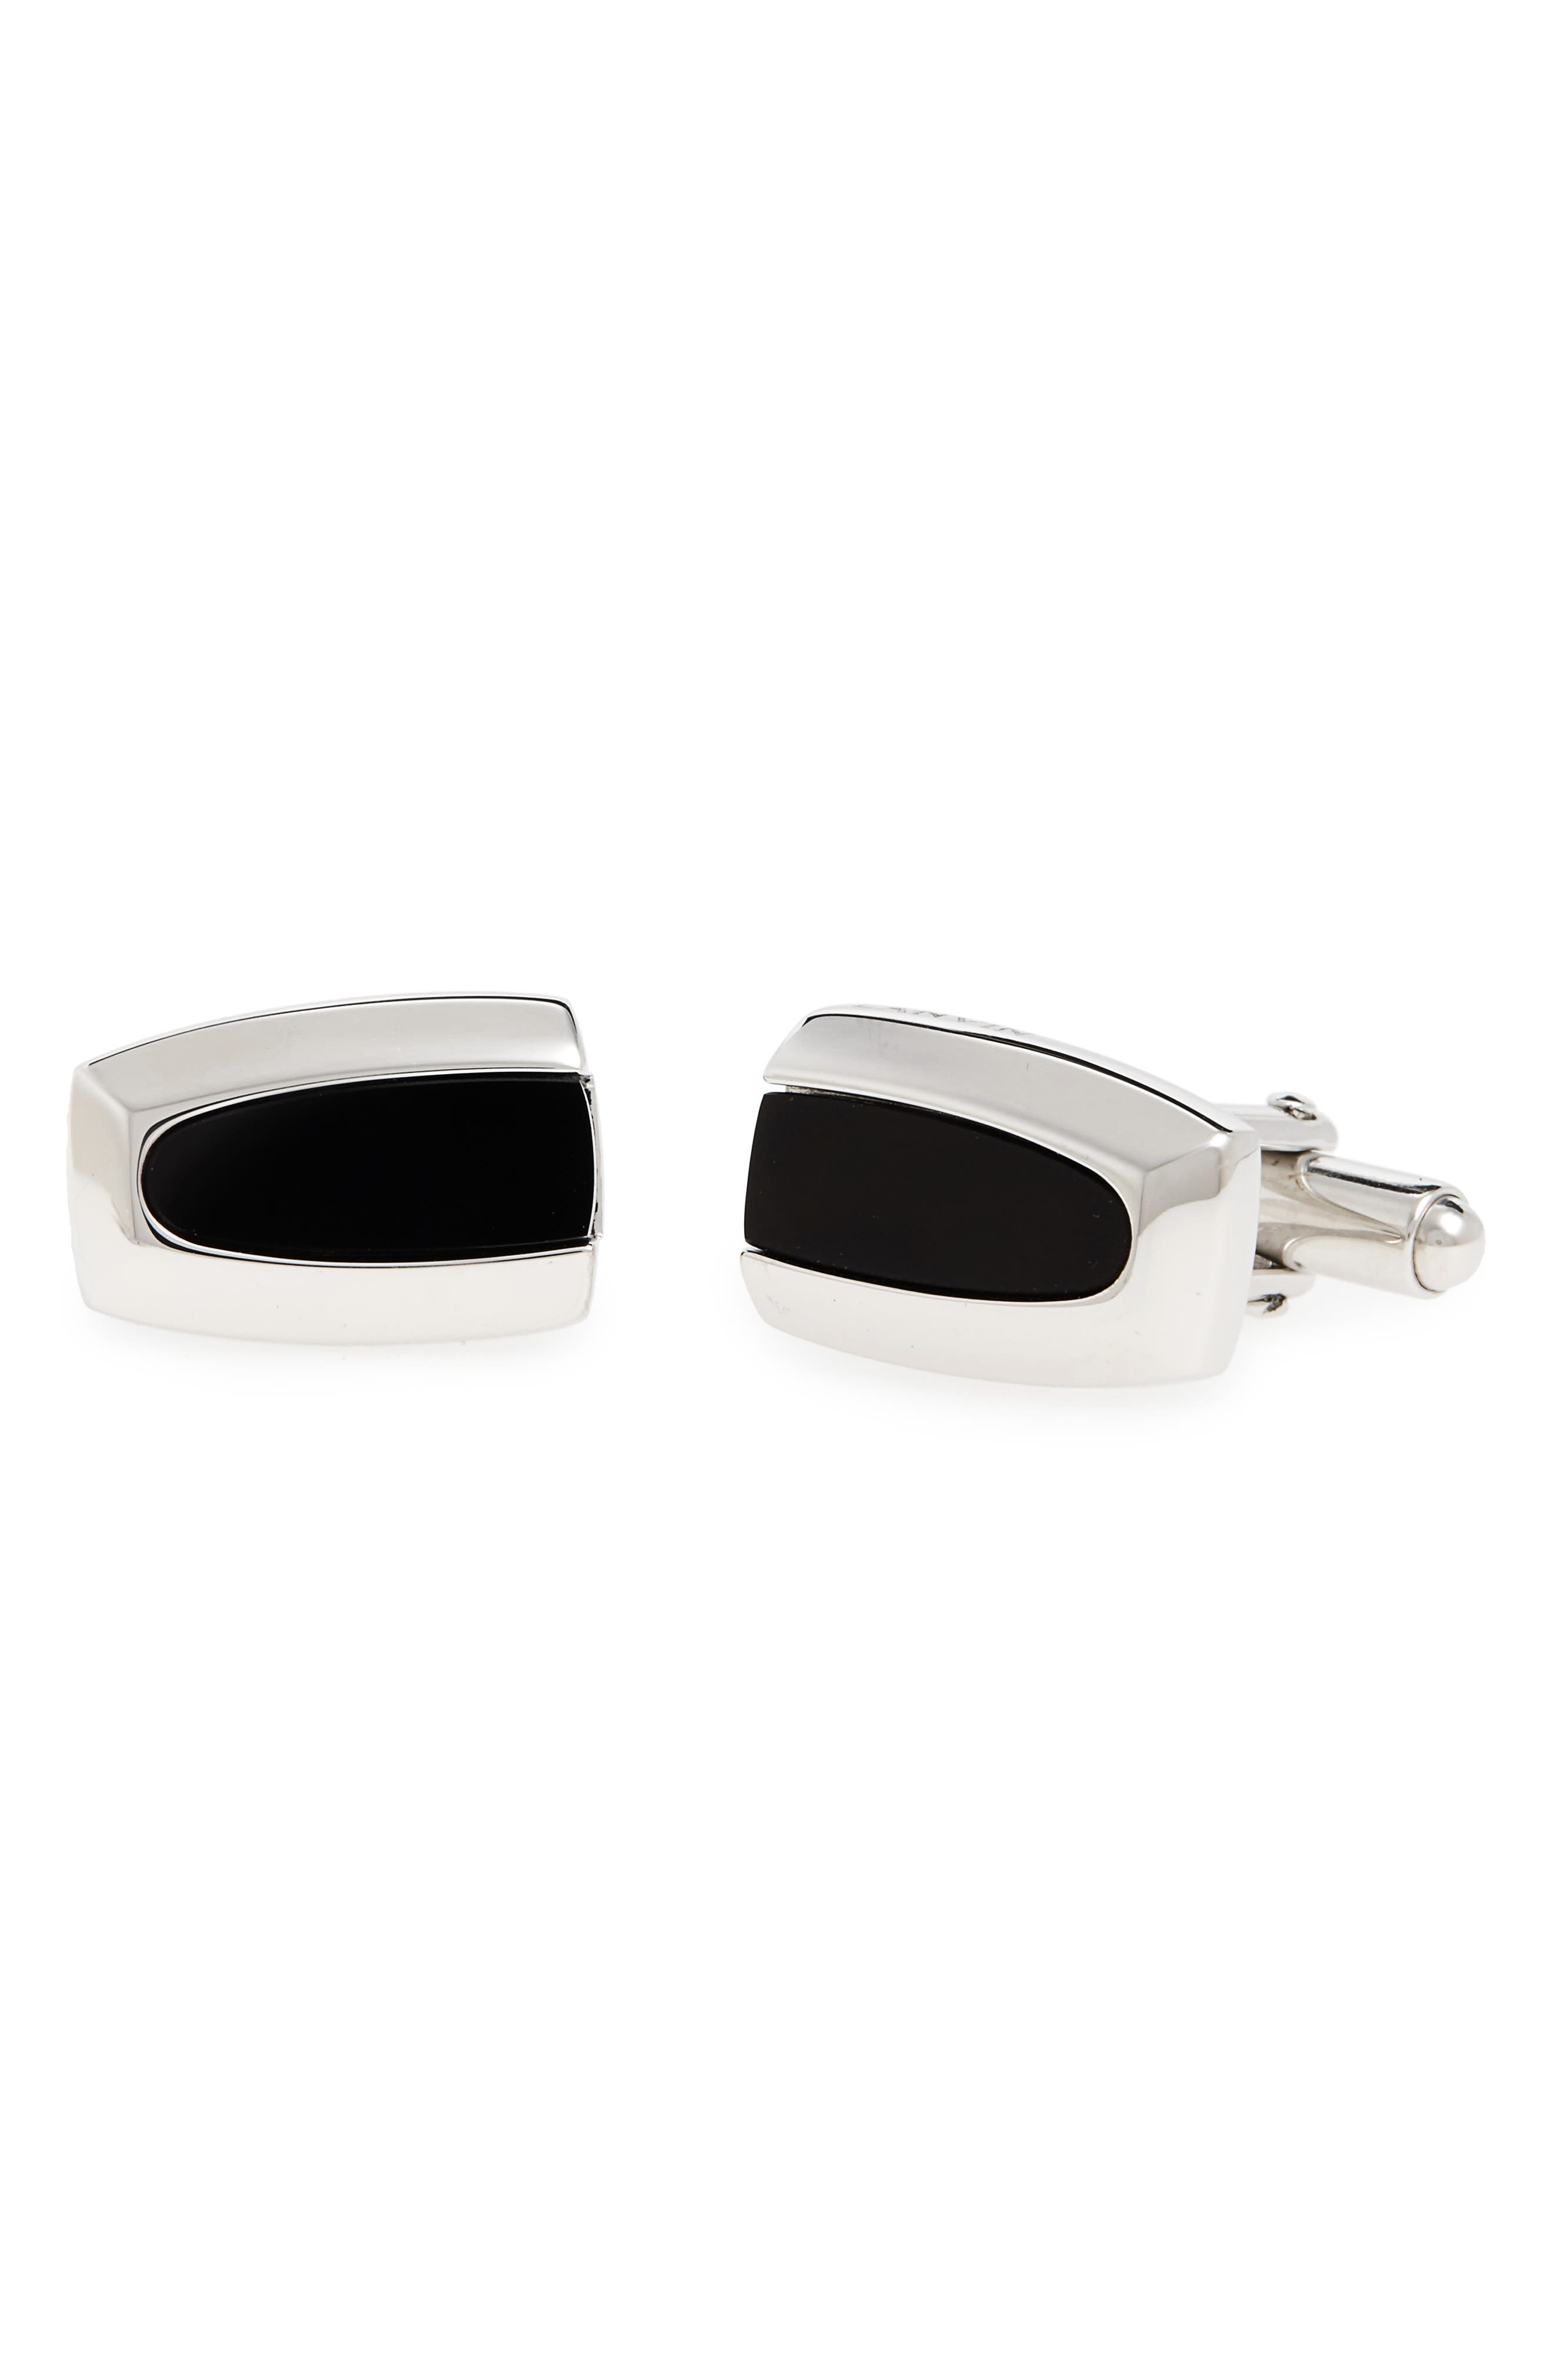 Onyx Cuff Links,                         Main,                         color, 040